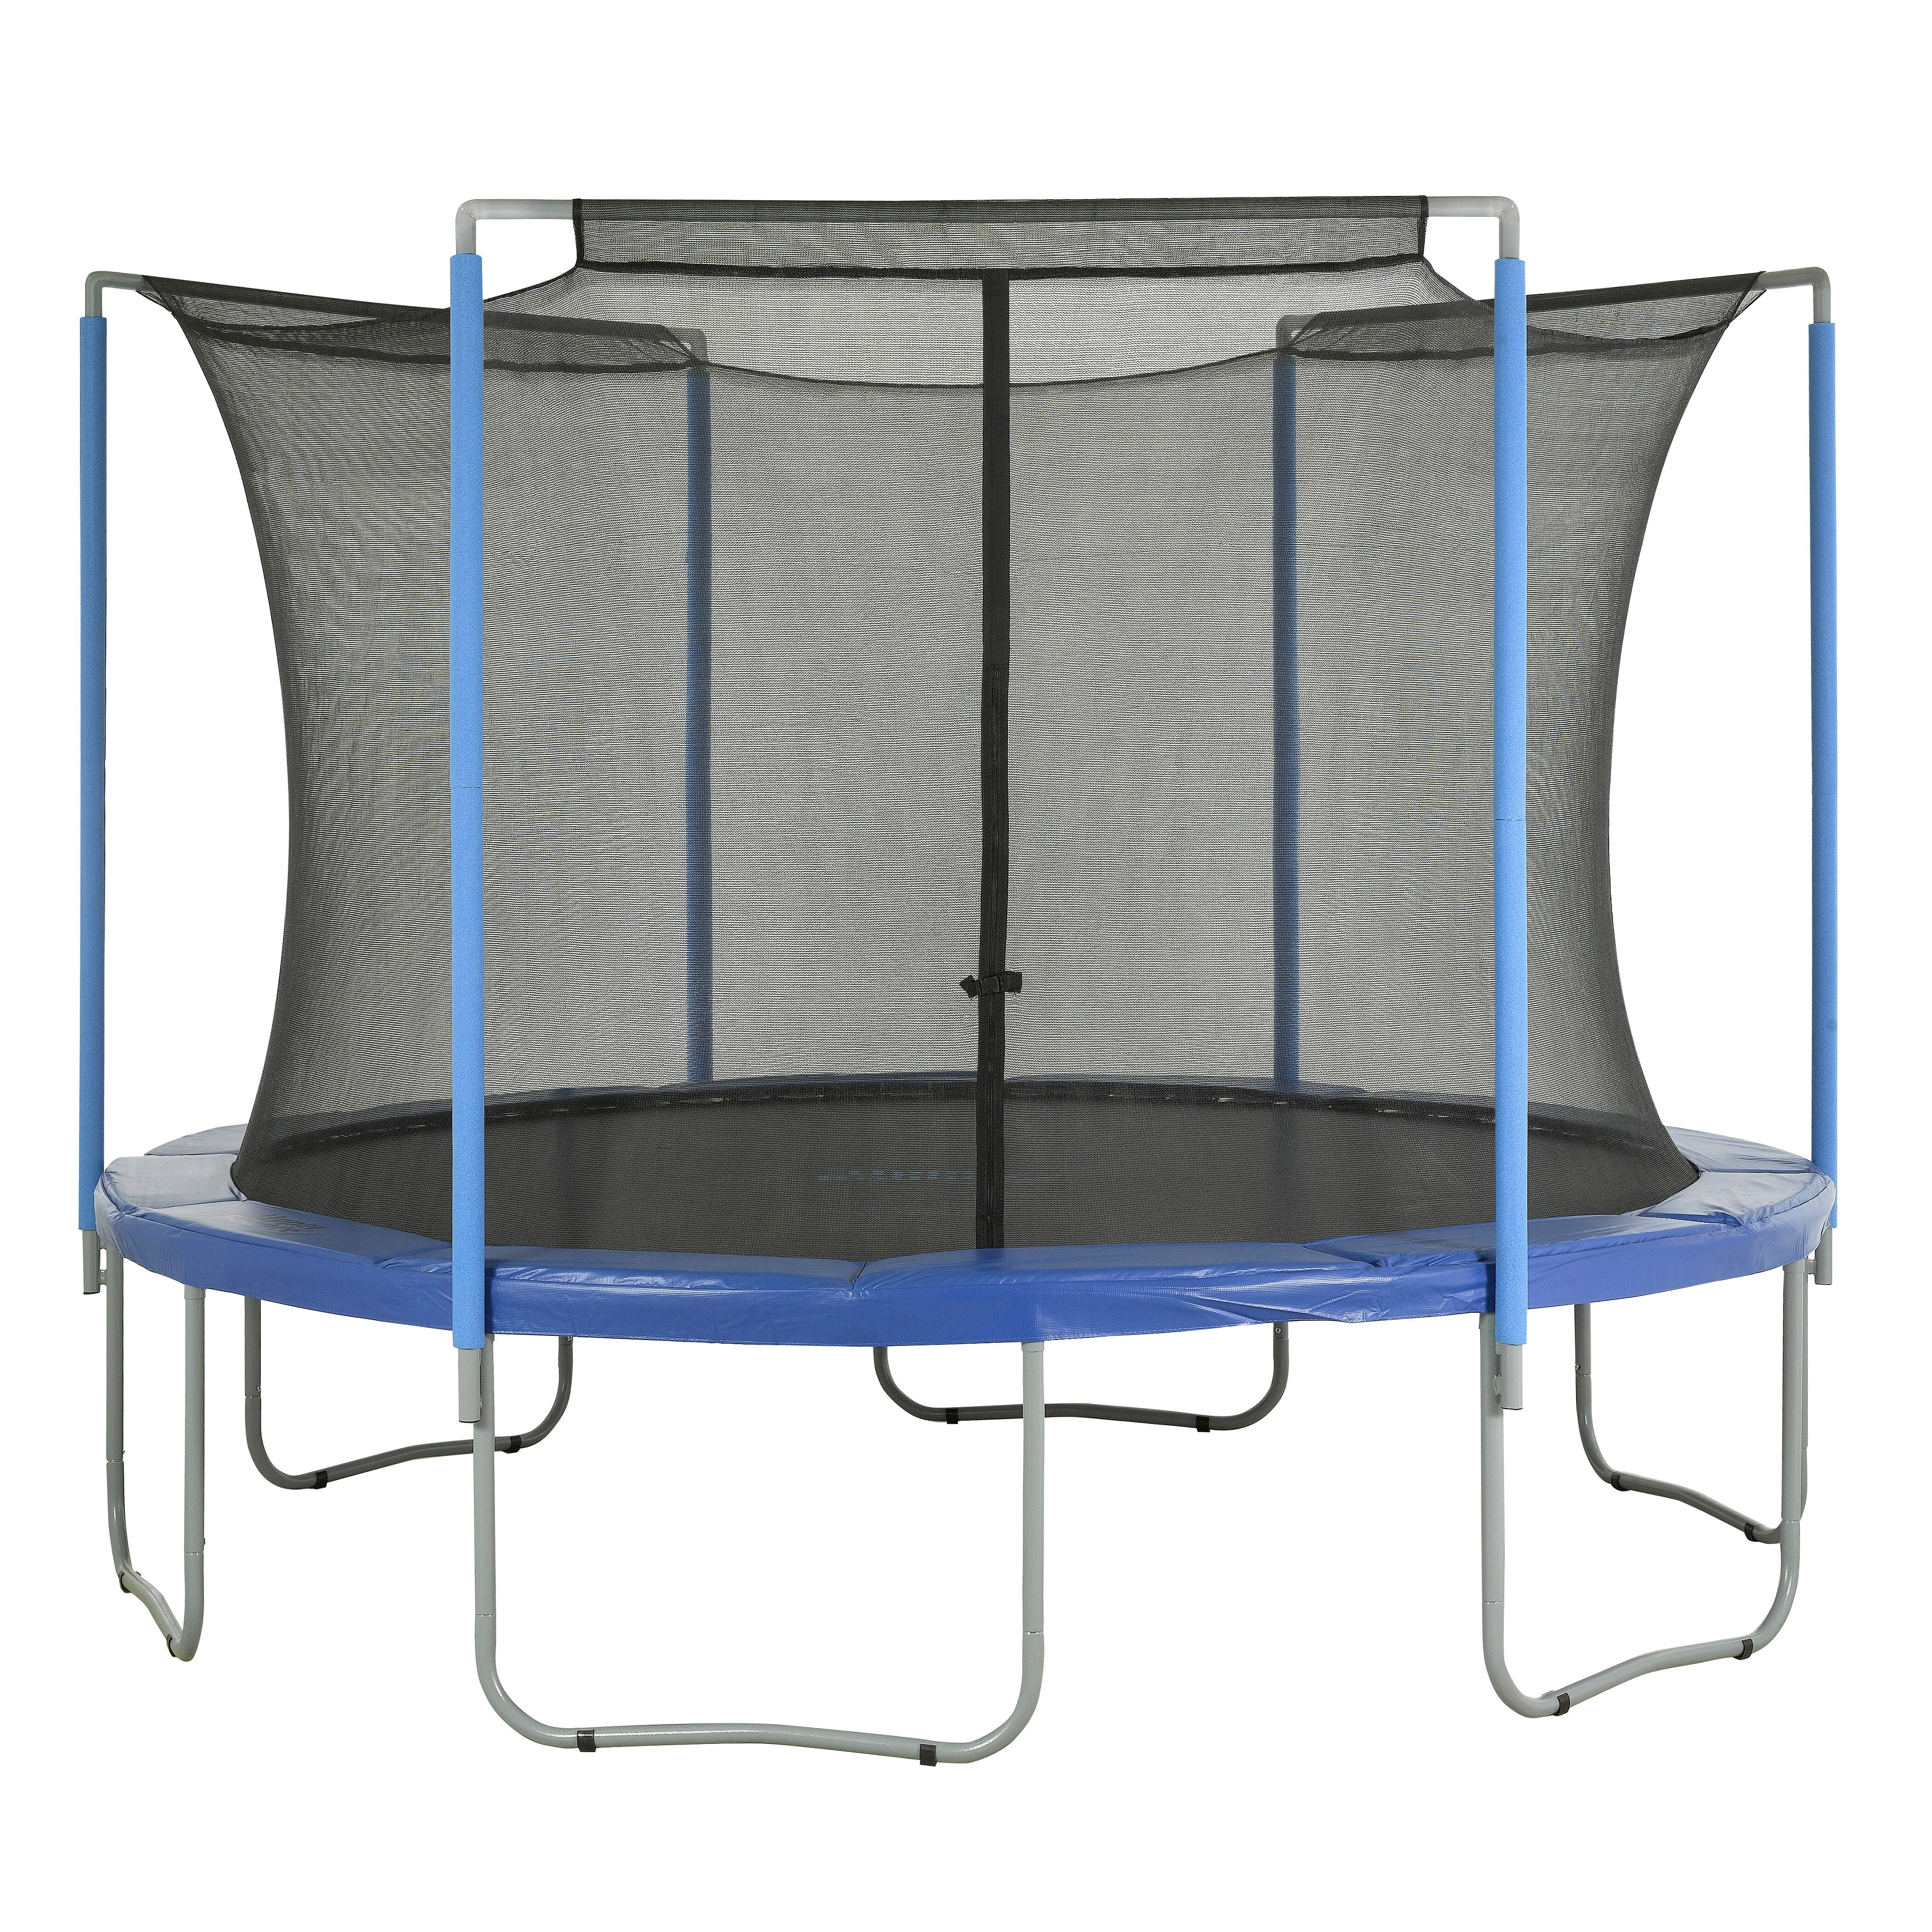 Upper Bounce 14' Trampoline Enclosure Safety Net Fits For